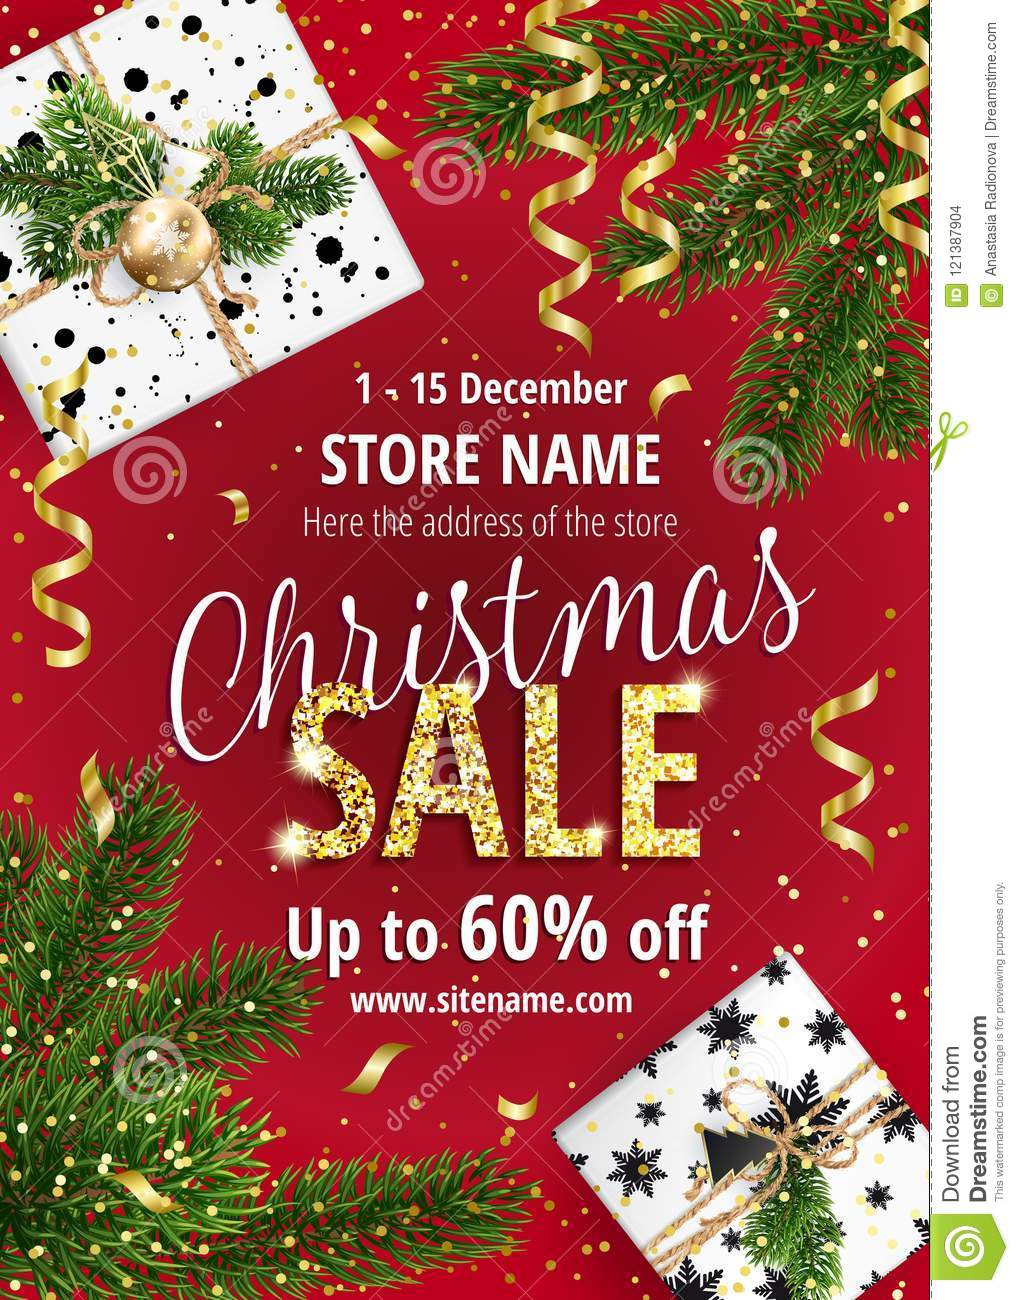 The Christmas sale. Red banner for web or flyer.